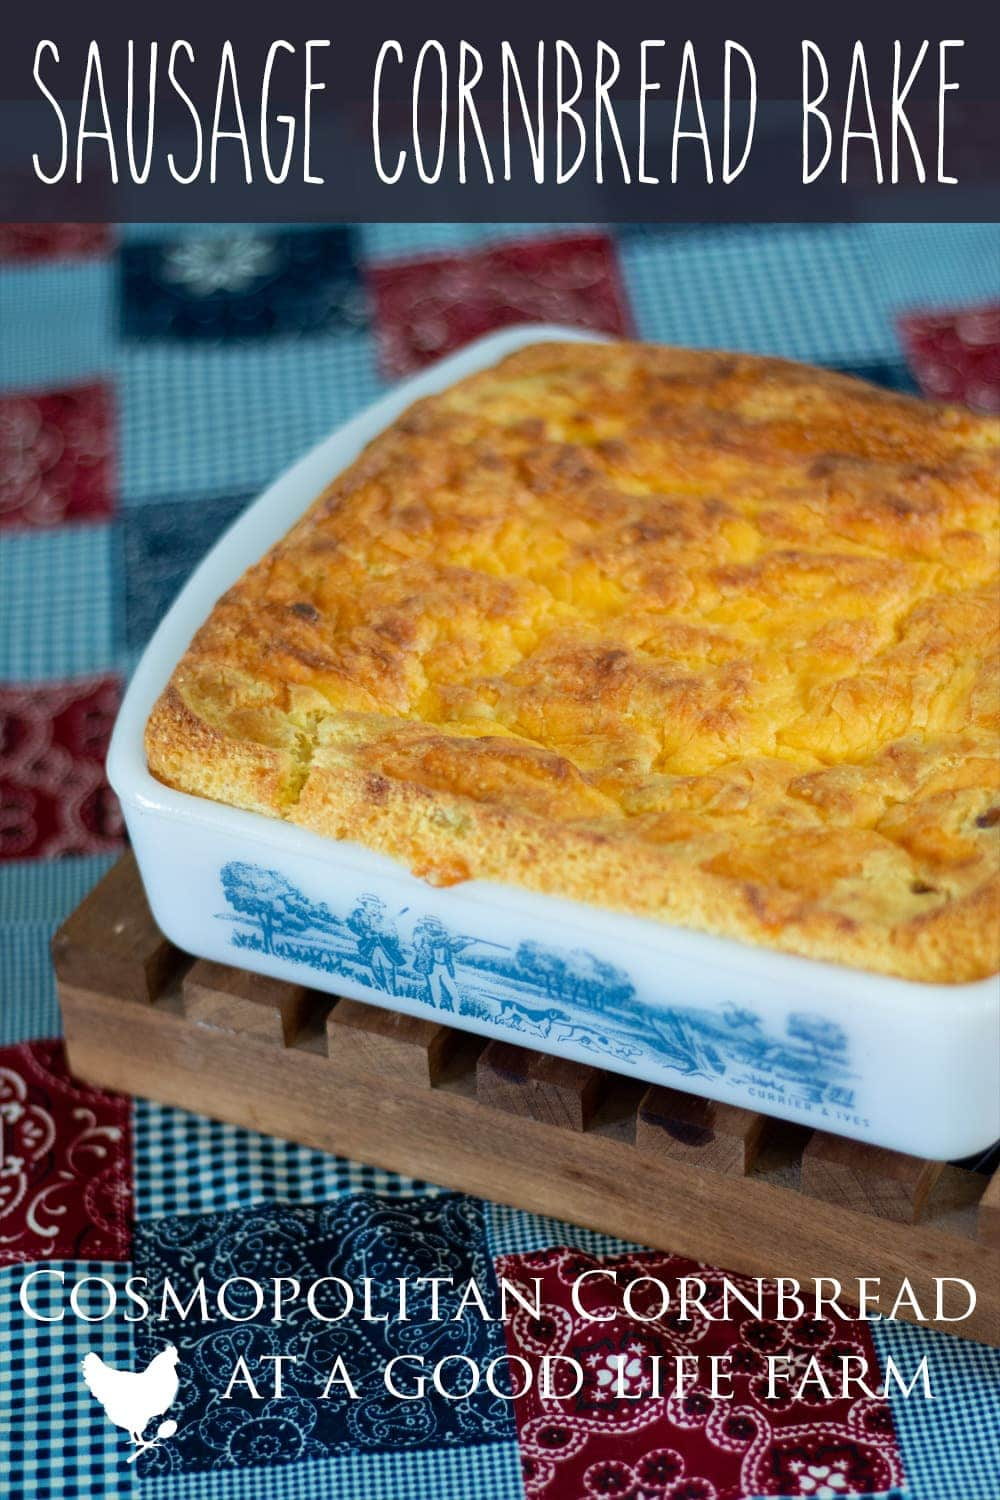 Sausage Cornbread Bake - With sausage, onion and cheese, this moist cornbread recipe is substantial enough to serve as a meal on its own. #sausage #cornbreadrecipe #casserole